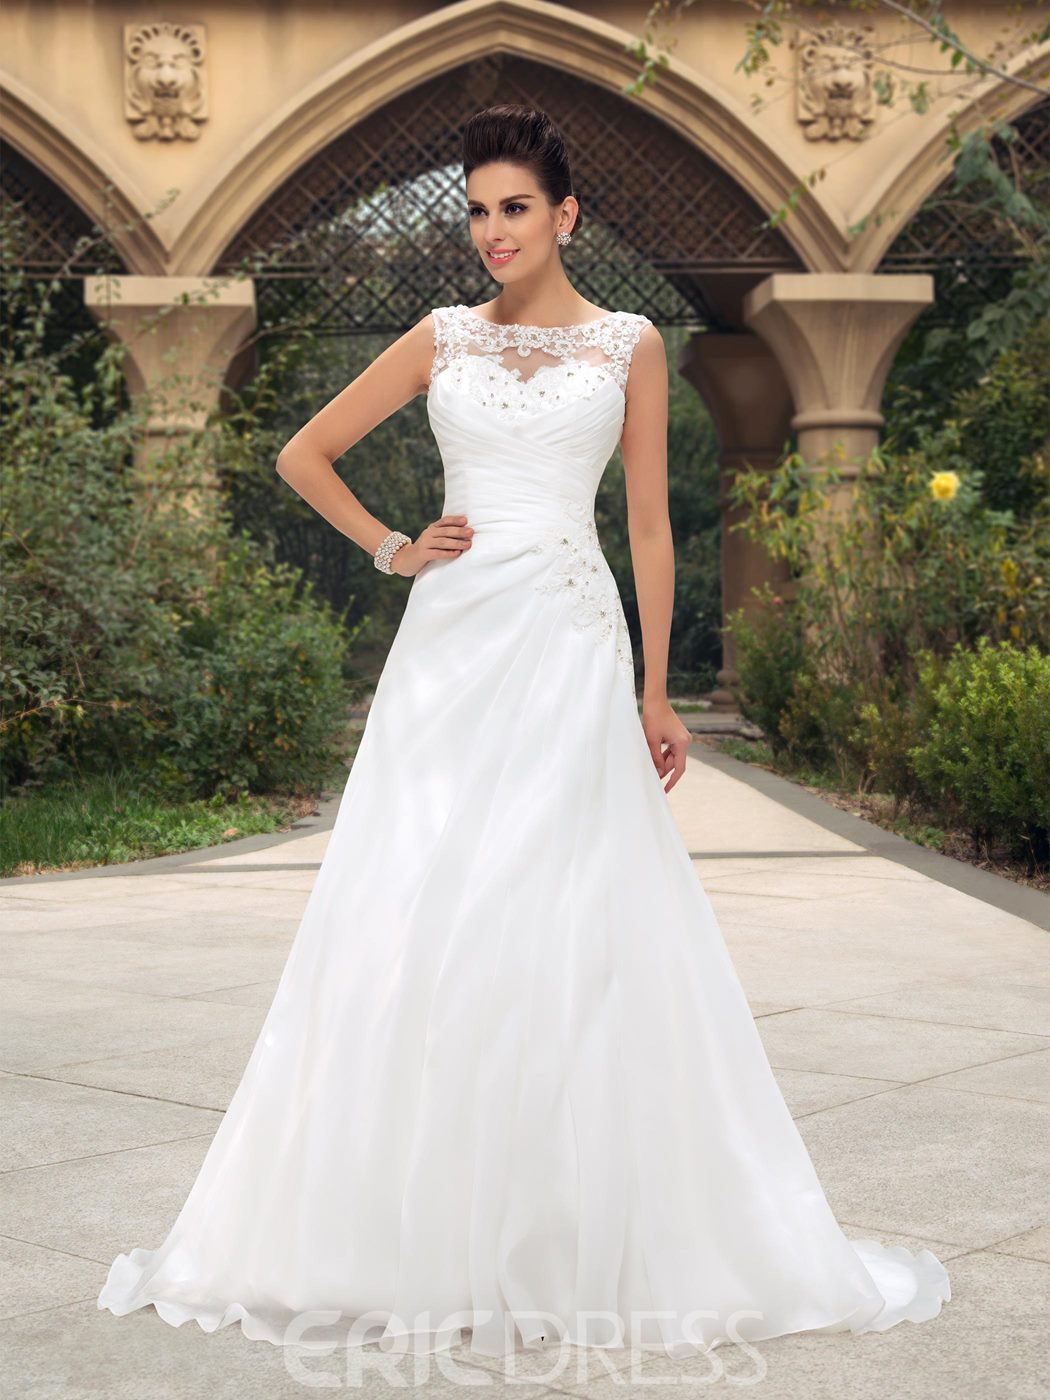 Beaded Lace Appliques A-Line Zip-up Wedding Dress